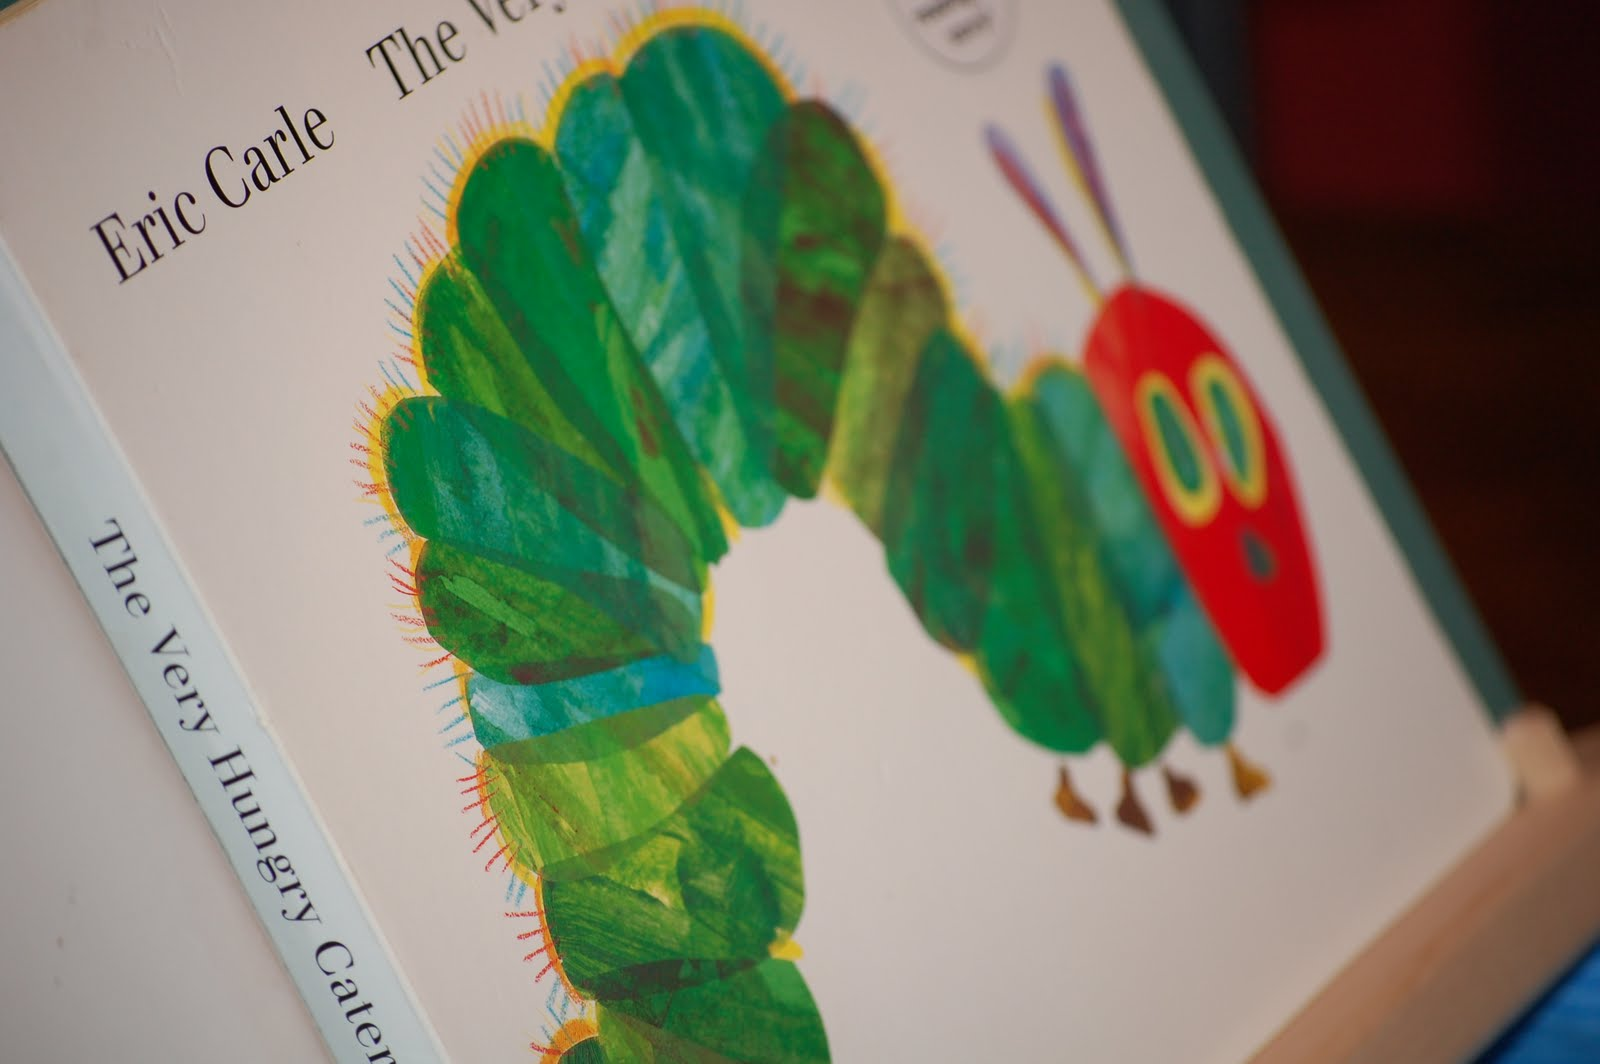 The Very Hungry Caterpillar And The Letter C